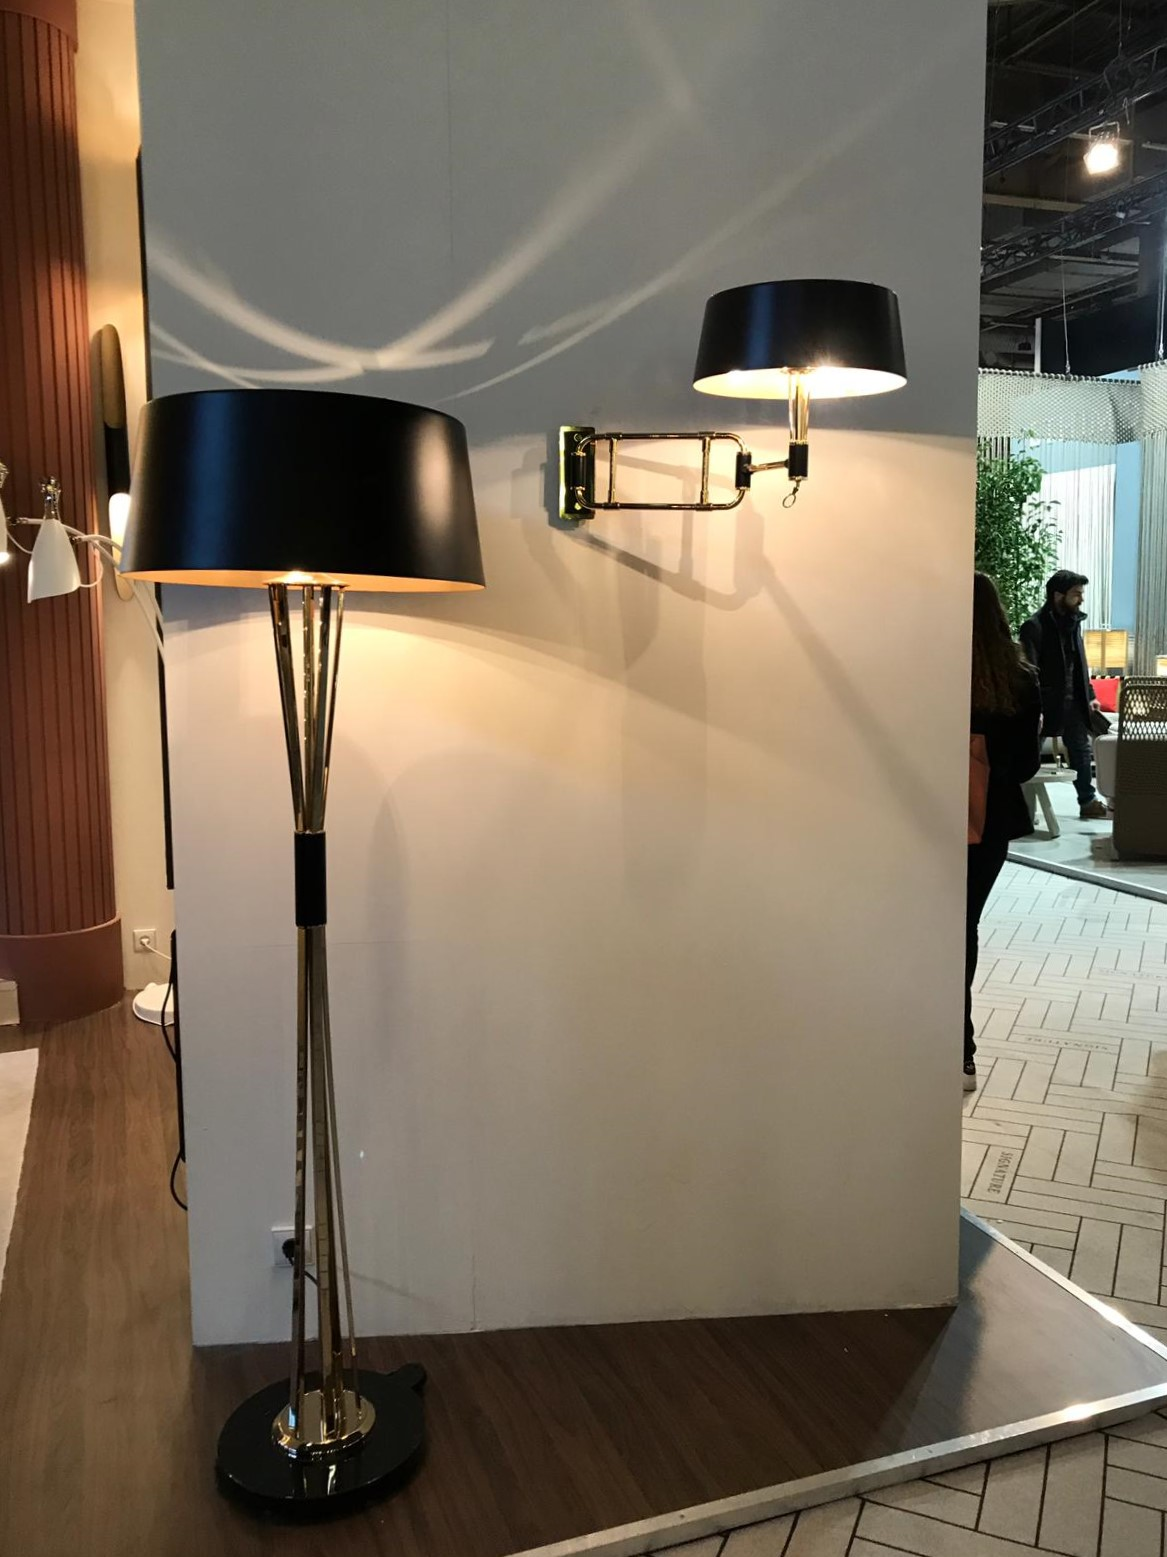 Almost Coming To Na End, See What You Missed At Maison Et Objet 2019 6 Maison Et Objet 2019 Almost Coming To An End, See What You Missed At Maison Et Objet 2019 Almost Coming To Na End See What You Missed At Maison Et Objet 2019 6